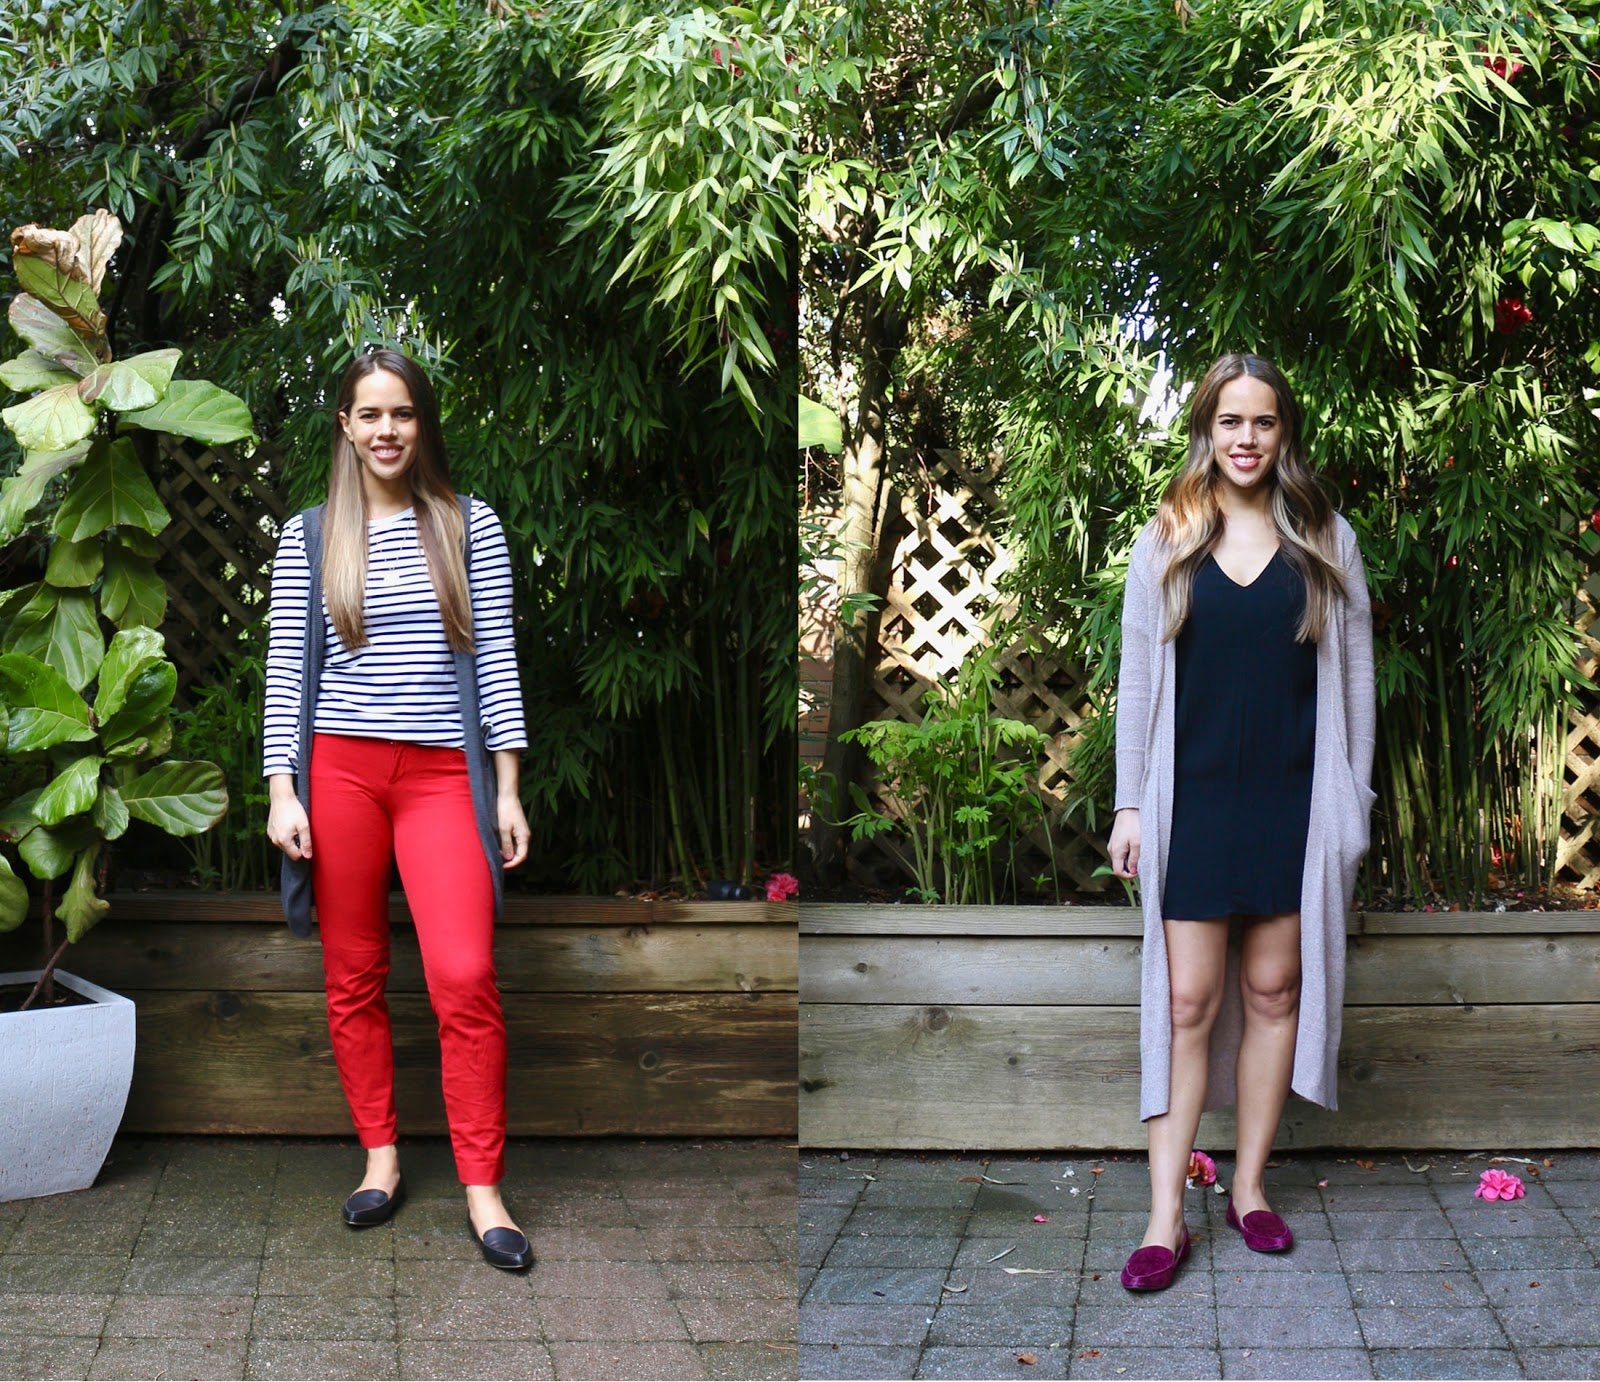 Jules in Flats April Outfits (Business Casual Spring Workwear on a Budget)